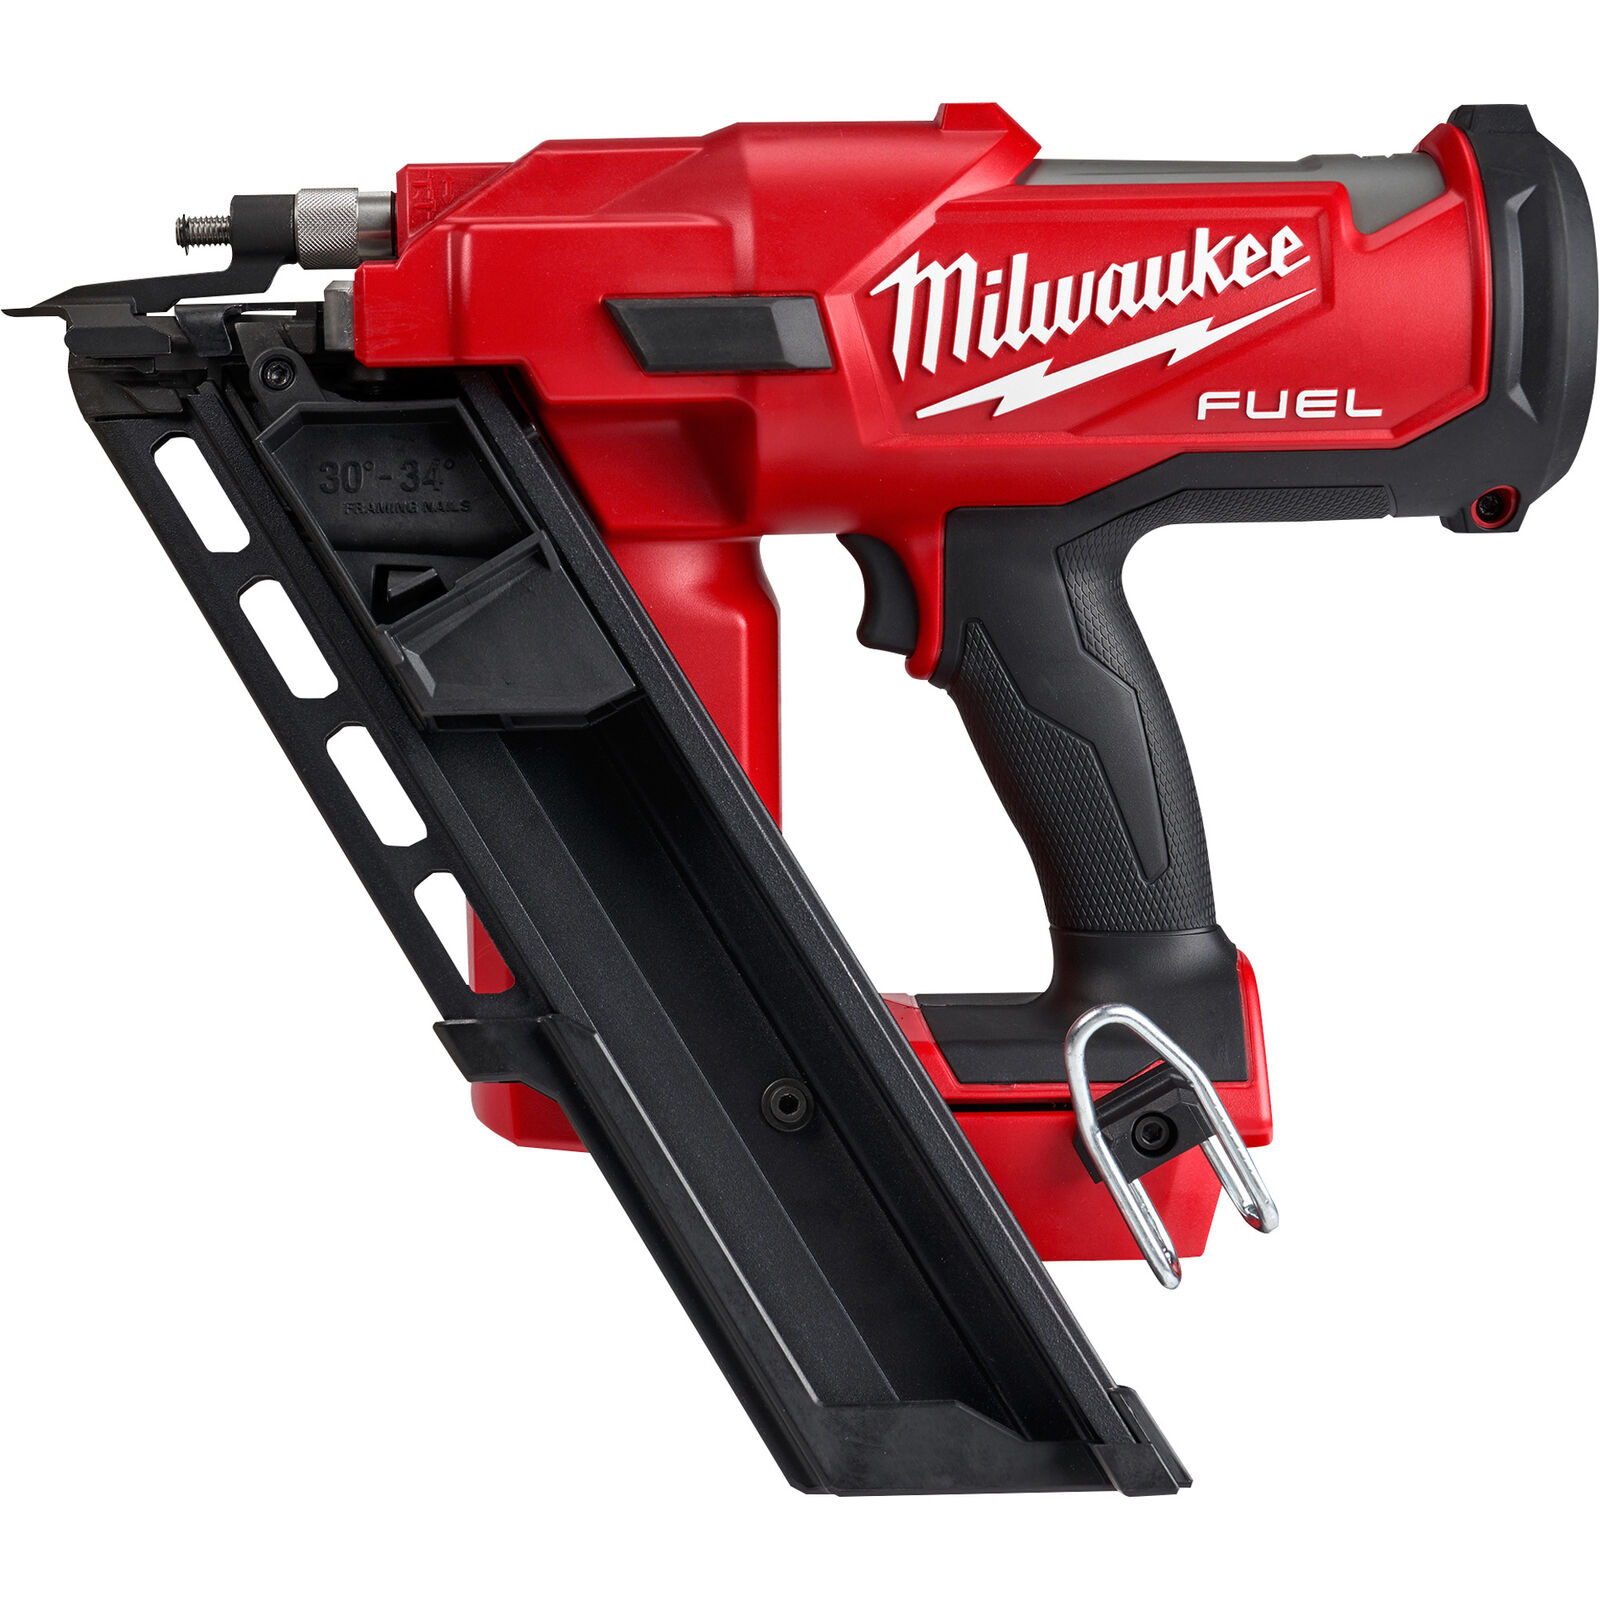 Milwaukee M18 FUEL Cordless 30 Degree Framing Nailer — Tool Only. Buy it now for 349.00